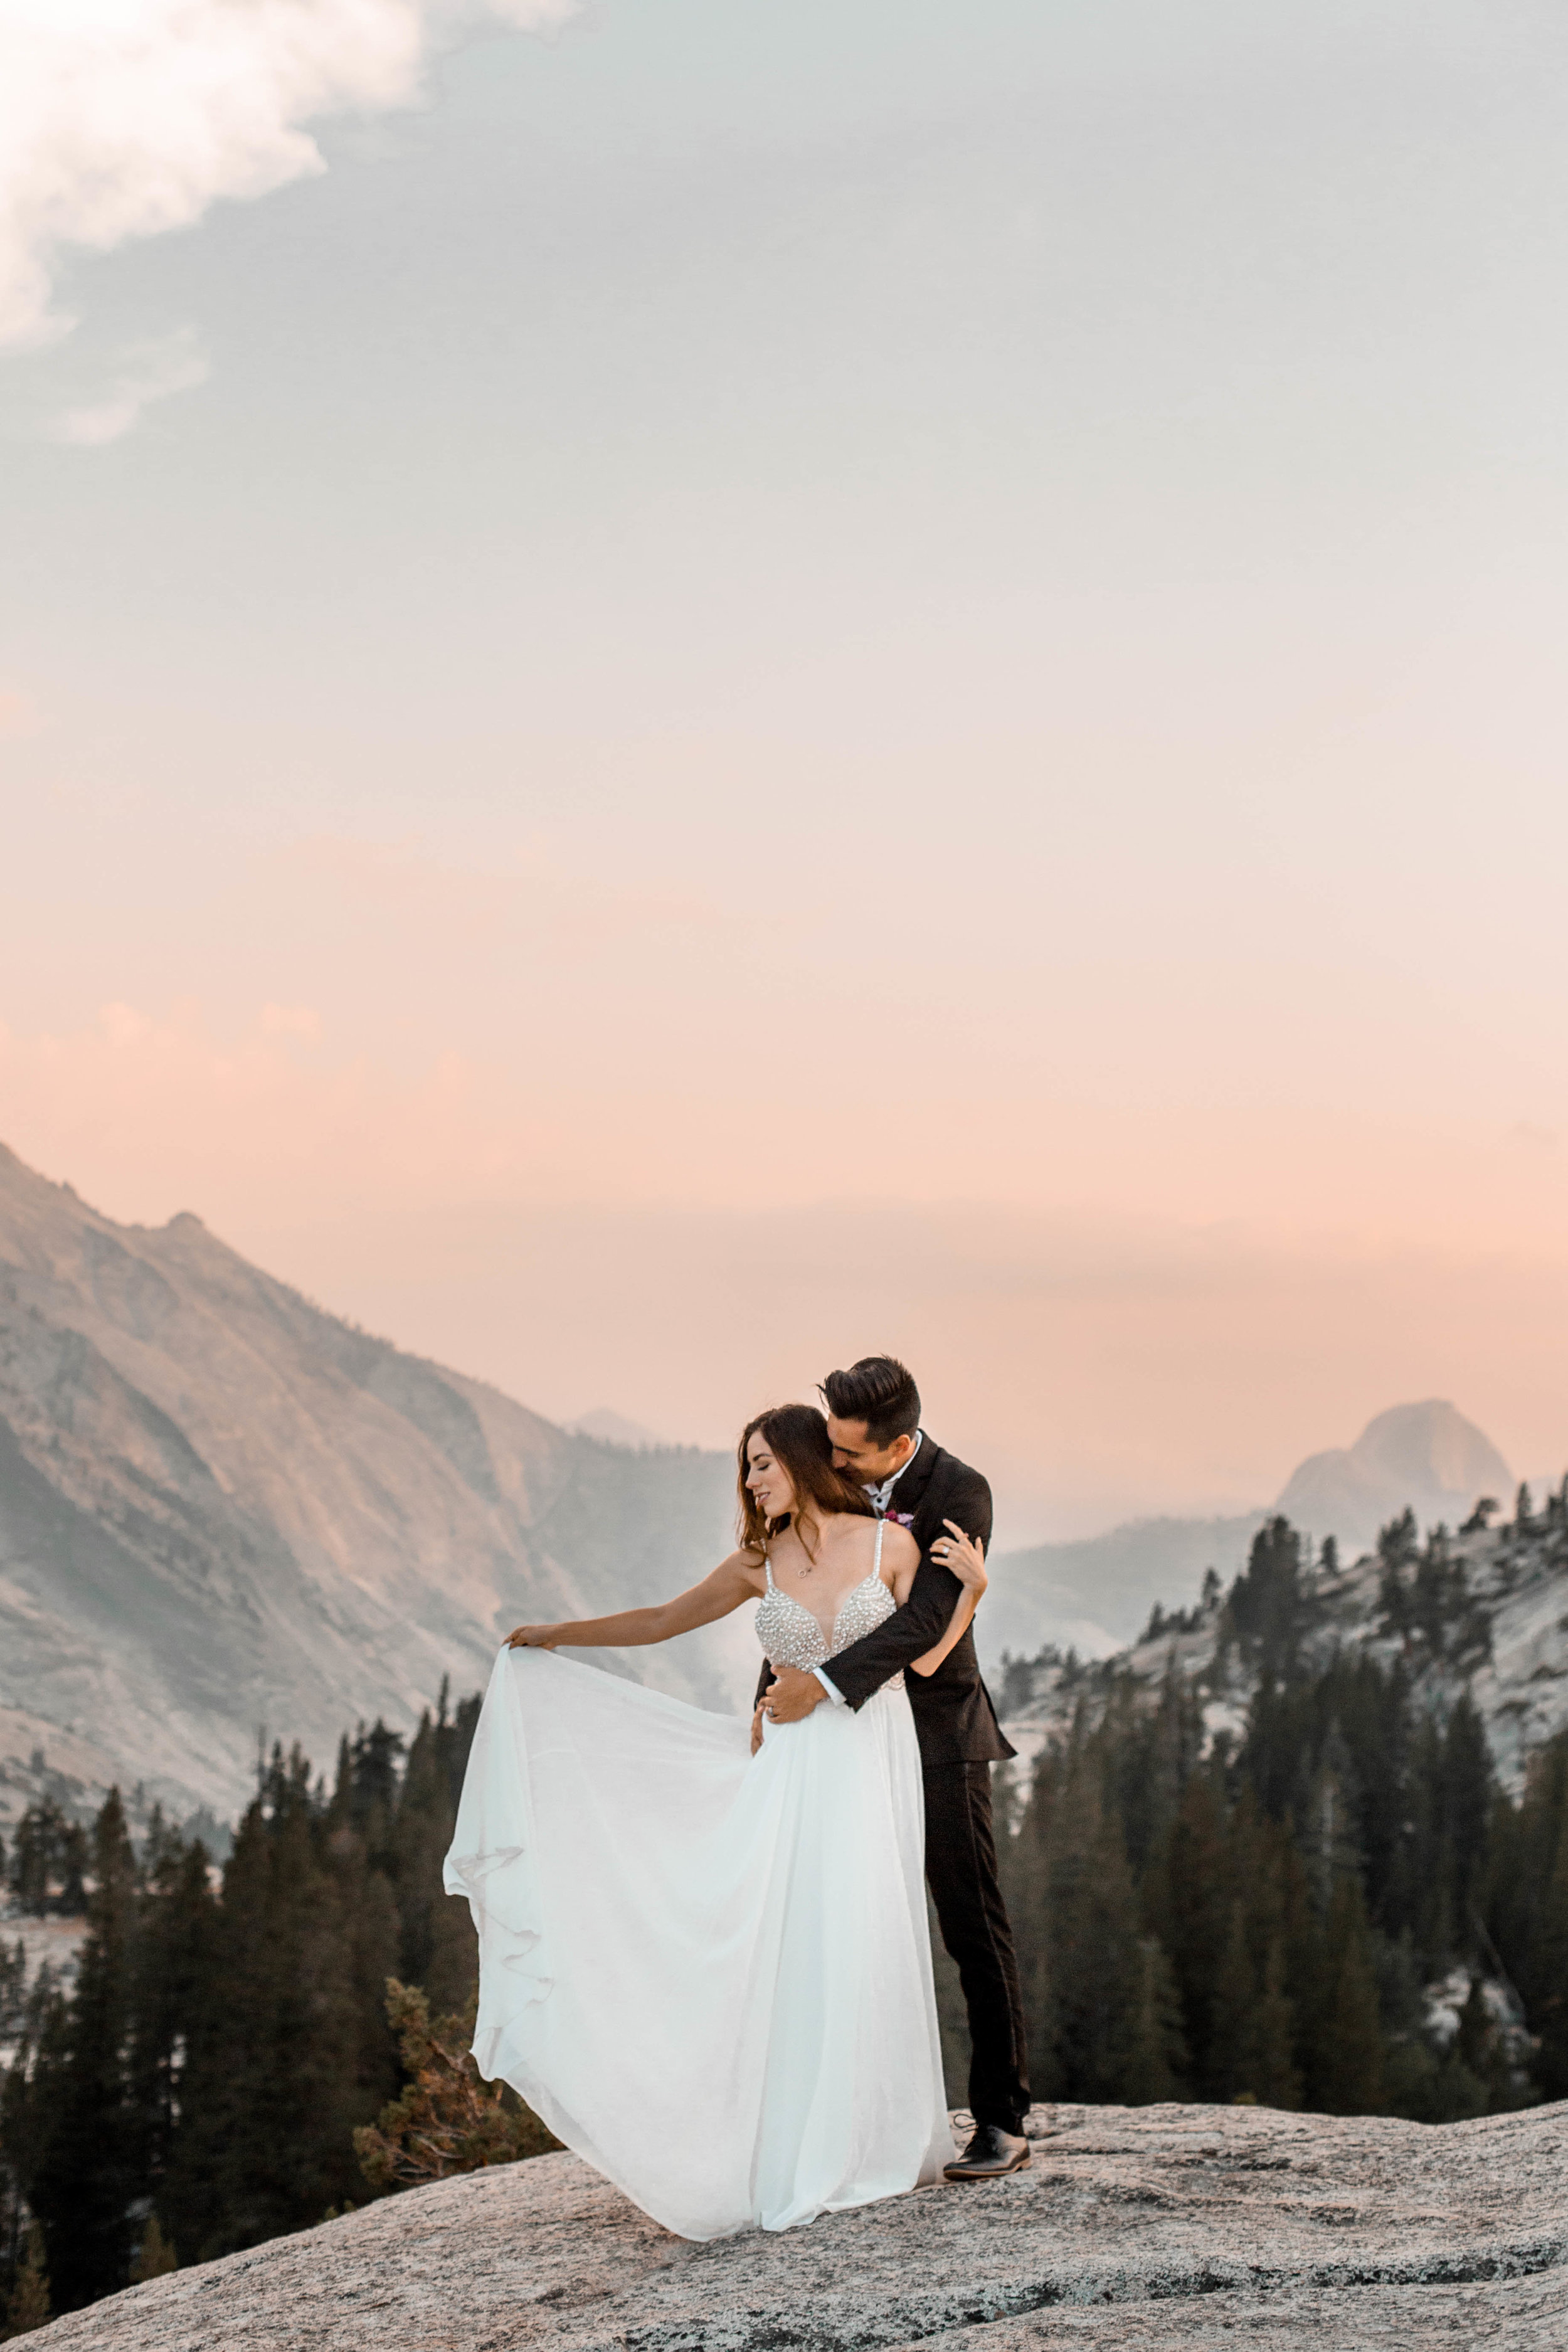 nicole-daacke-photography-yosemite-national-park-wedding-sunset-elopement-olmstead-point-yosemite-adventure-wedding-photographer-adventurous-elopement-destination-wedding-national-park-wedding-photography-1778.jpg